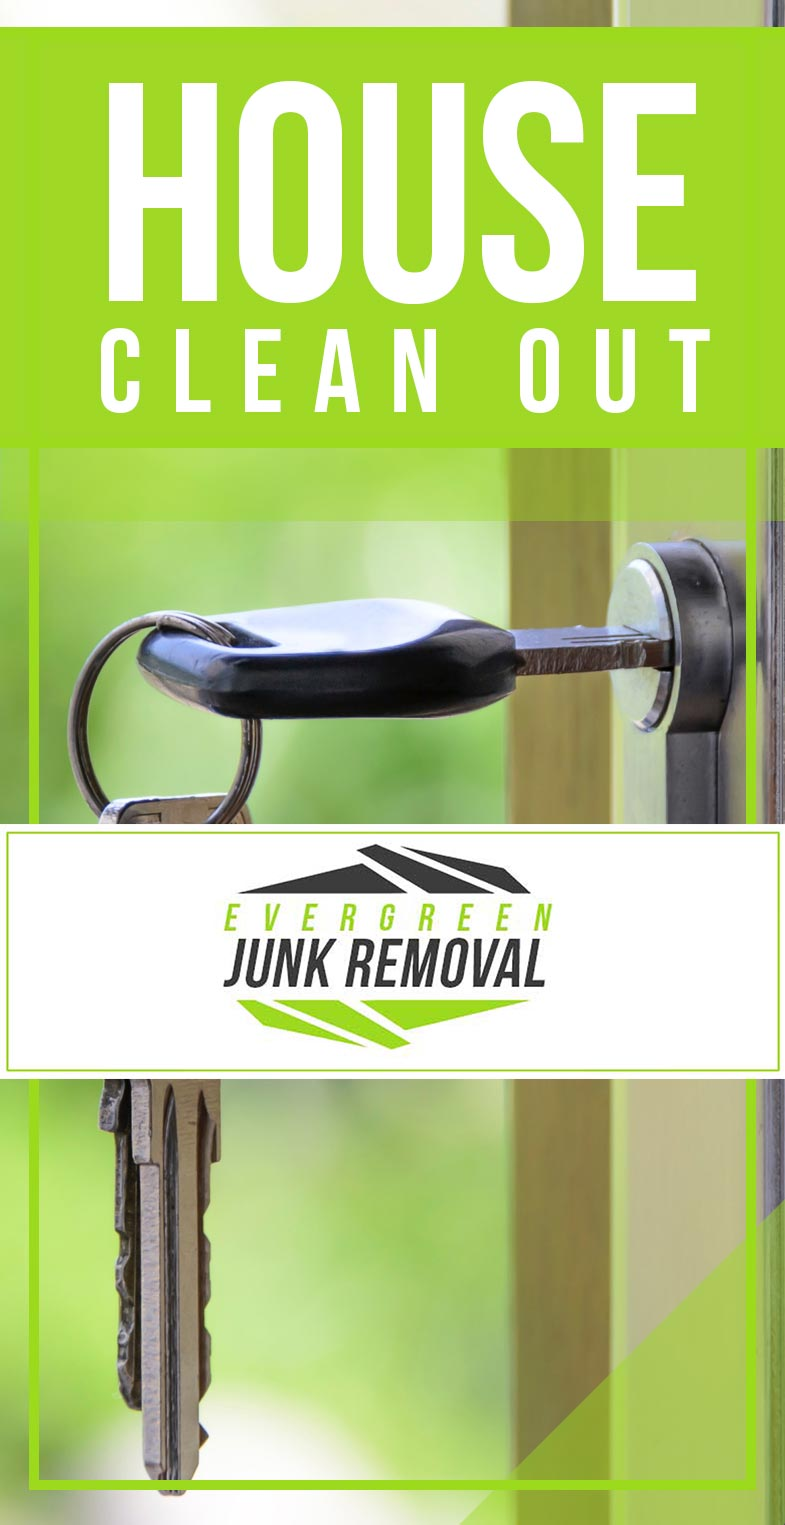 Junk Removal Lake Clarke Shores House Clean Out